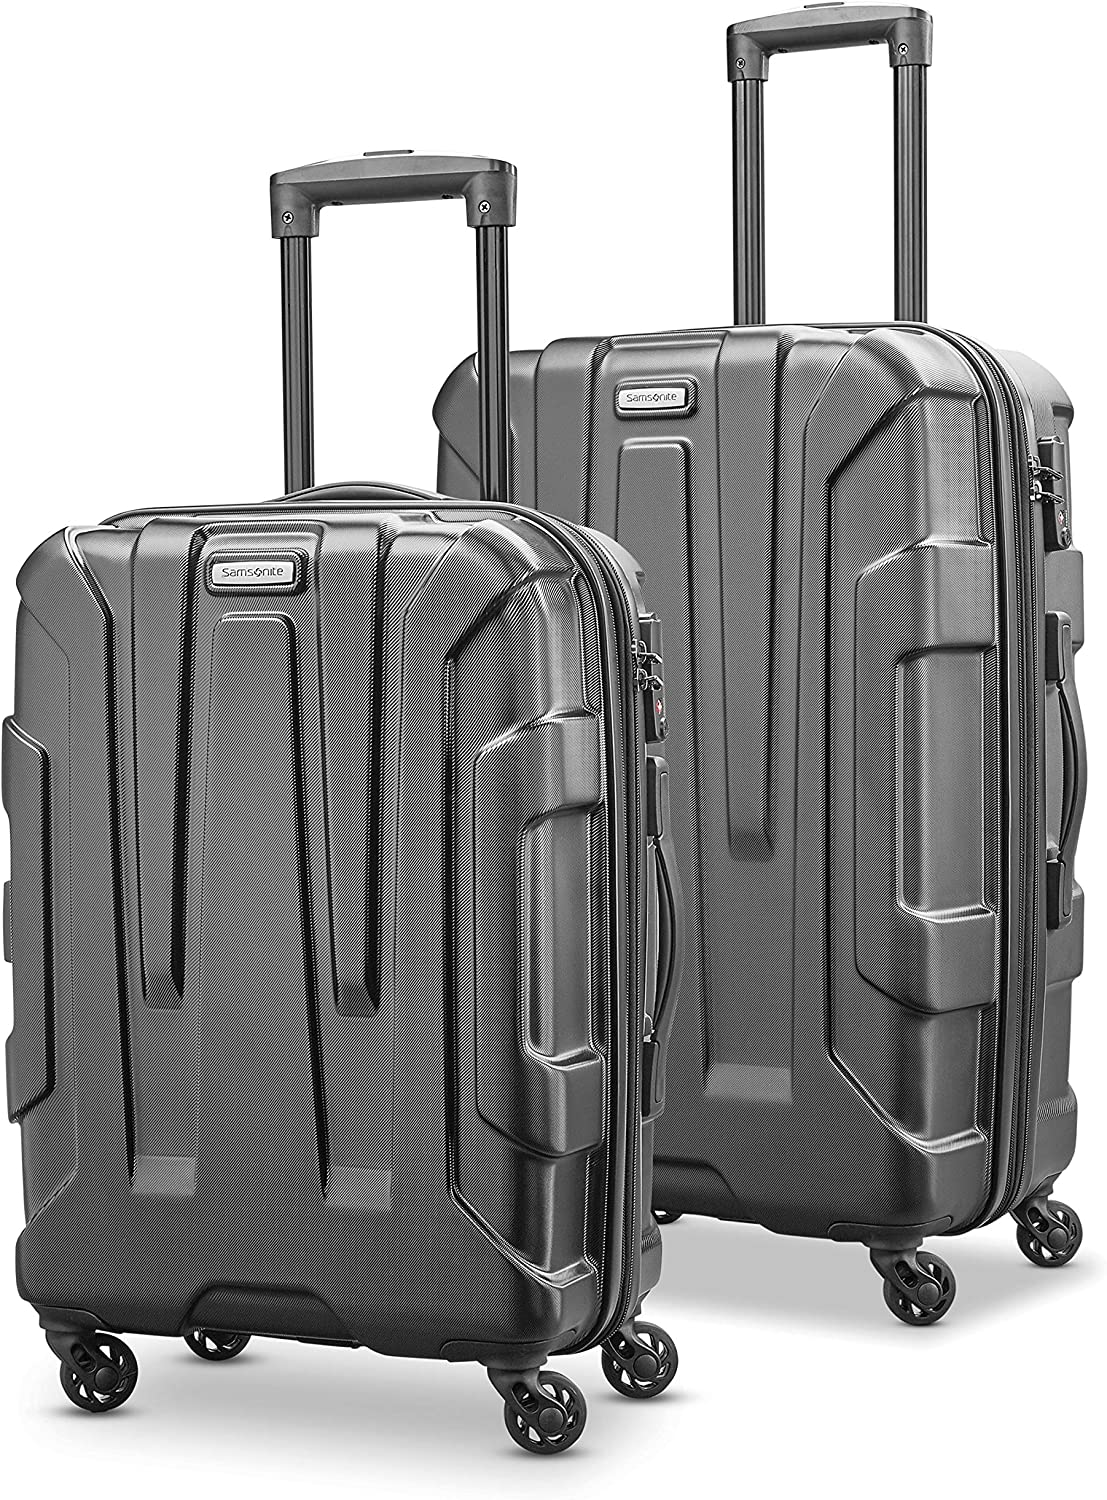 Black Samsonite Centric Hardside Expandable Luggage with Spinner Wheels